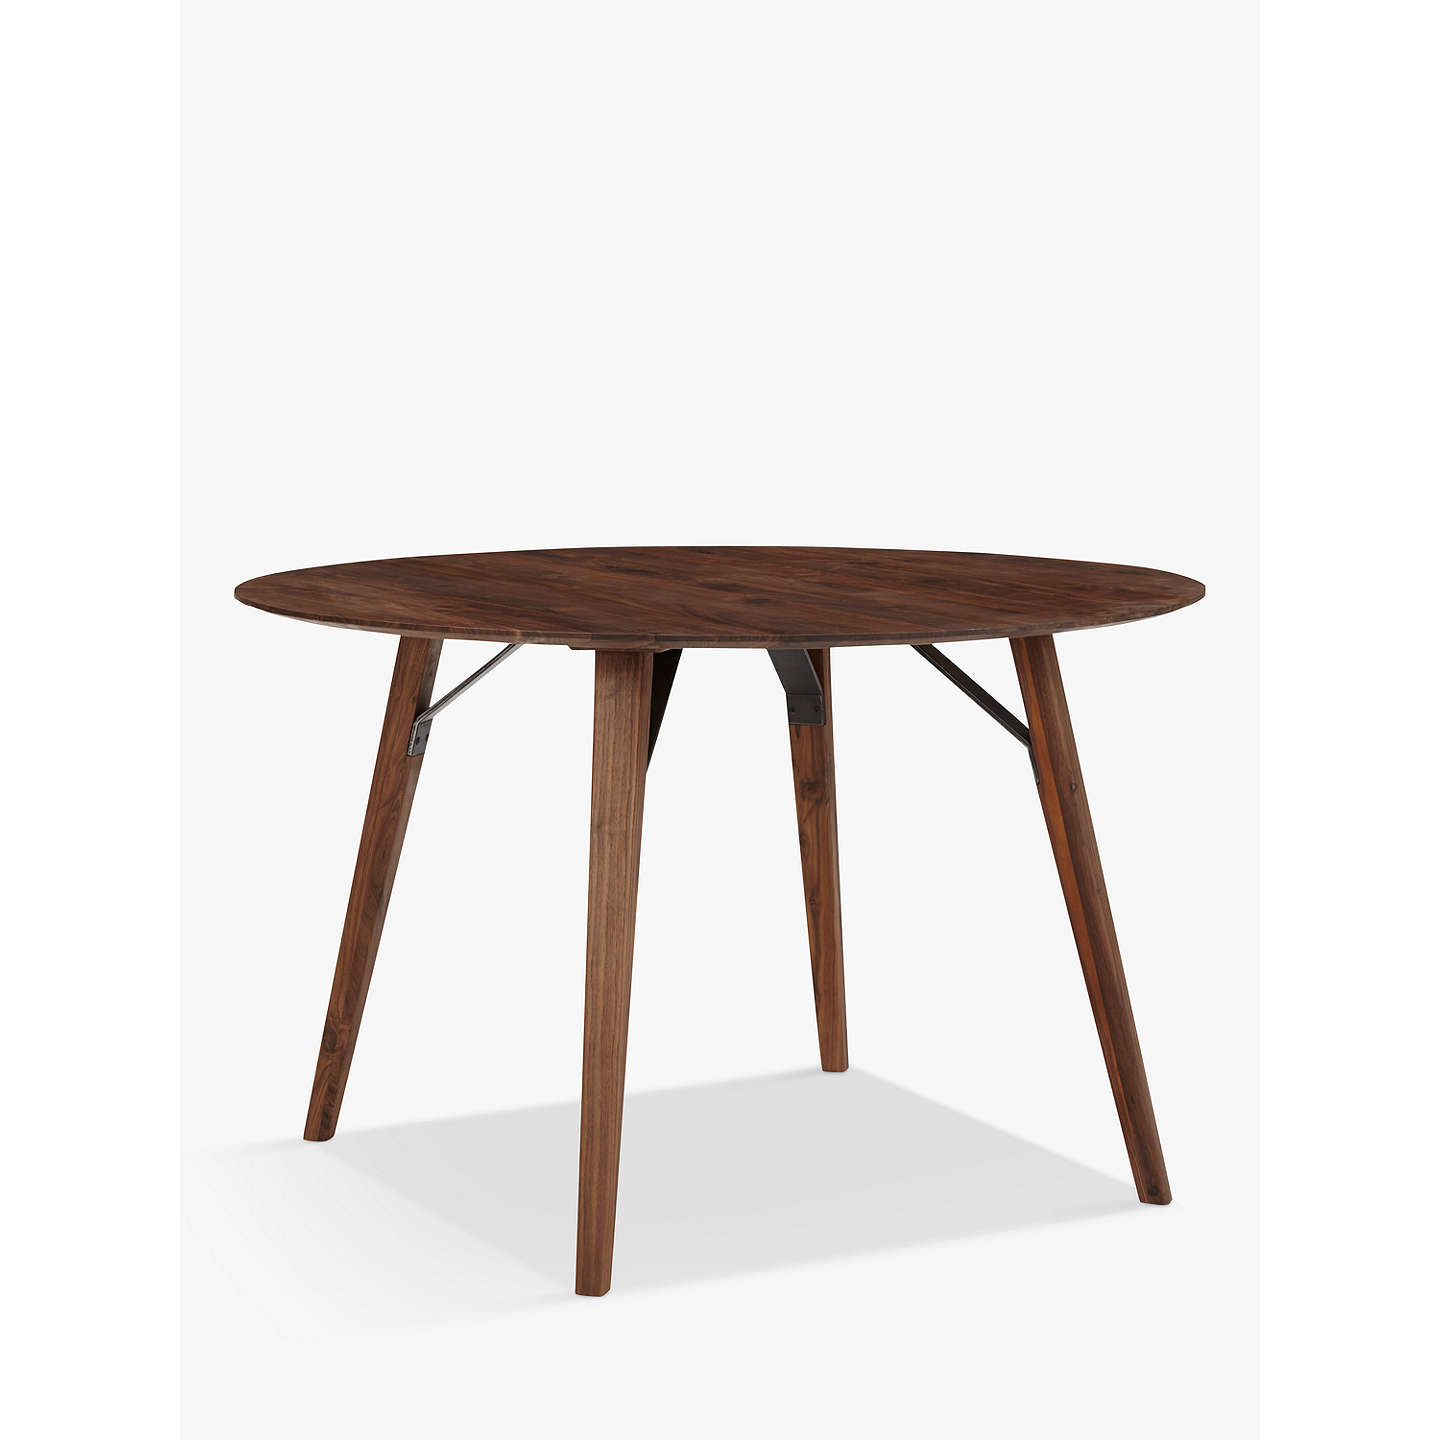 Design Project By John Lewis No.058 Dining Table At John Lewis